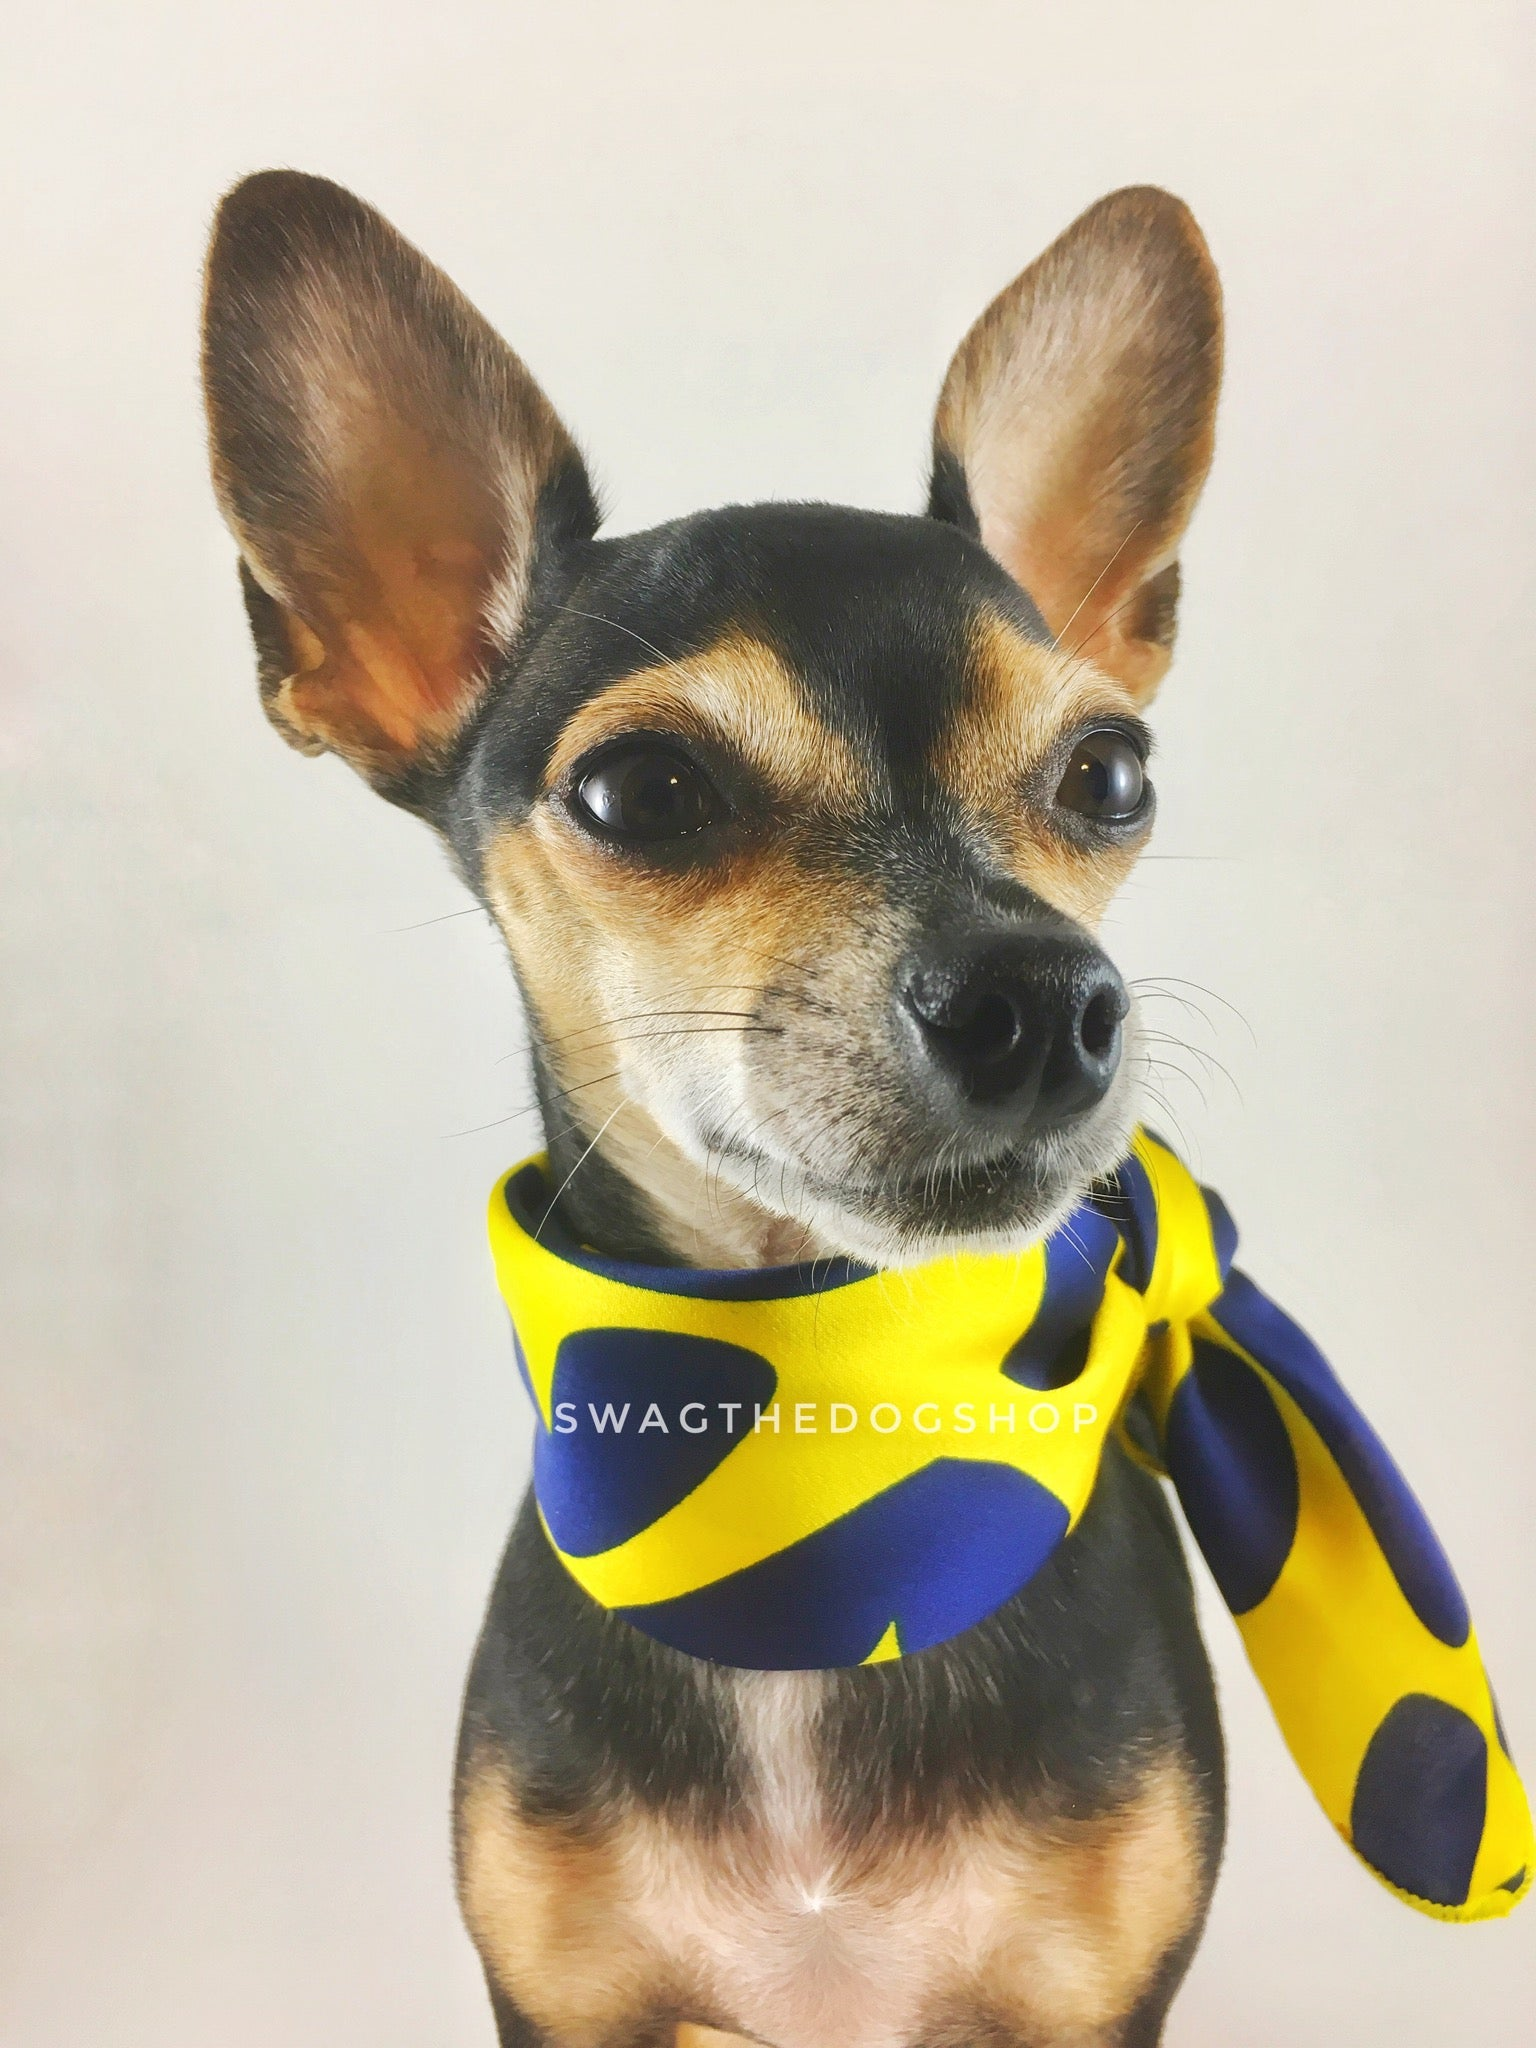 Full of Heart Yellow Swagdana Scarf - Bust of Cute Chihuahua Wearing Swagdana Scarf as Neckerchief. Dog Bandana. Dog Scarf.